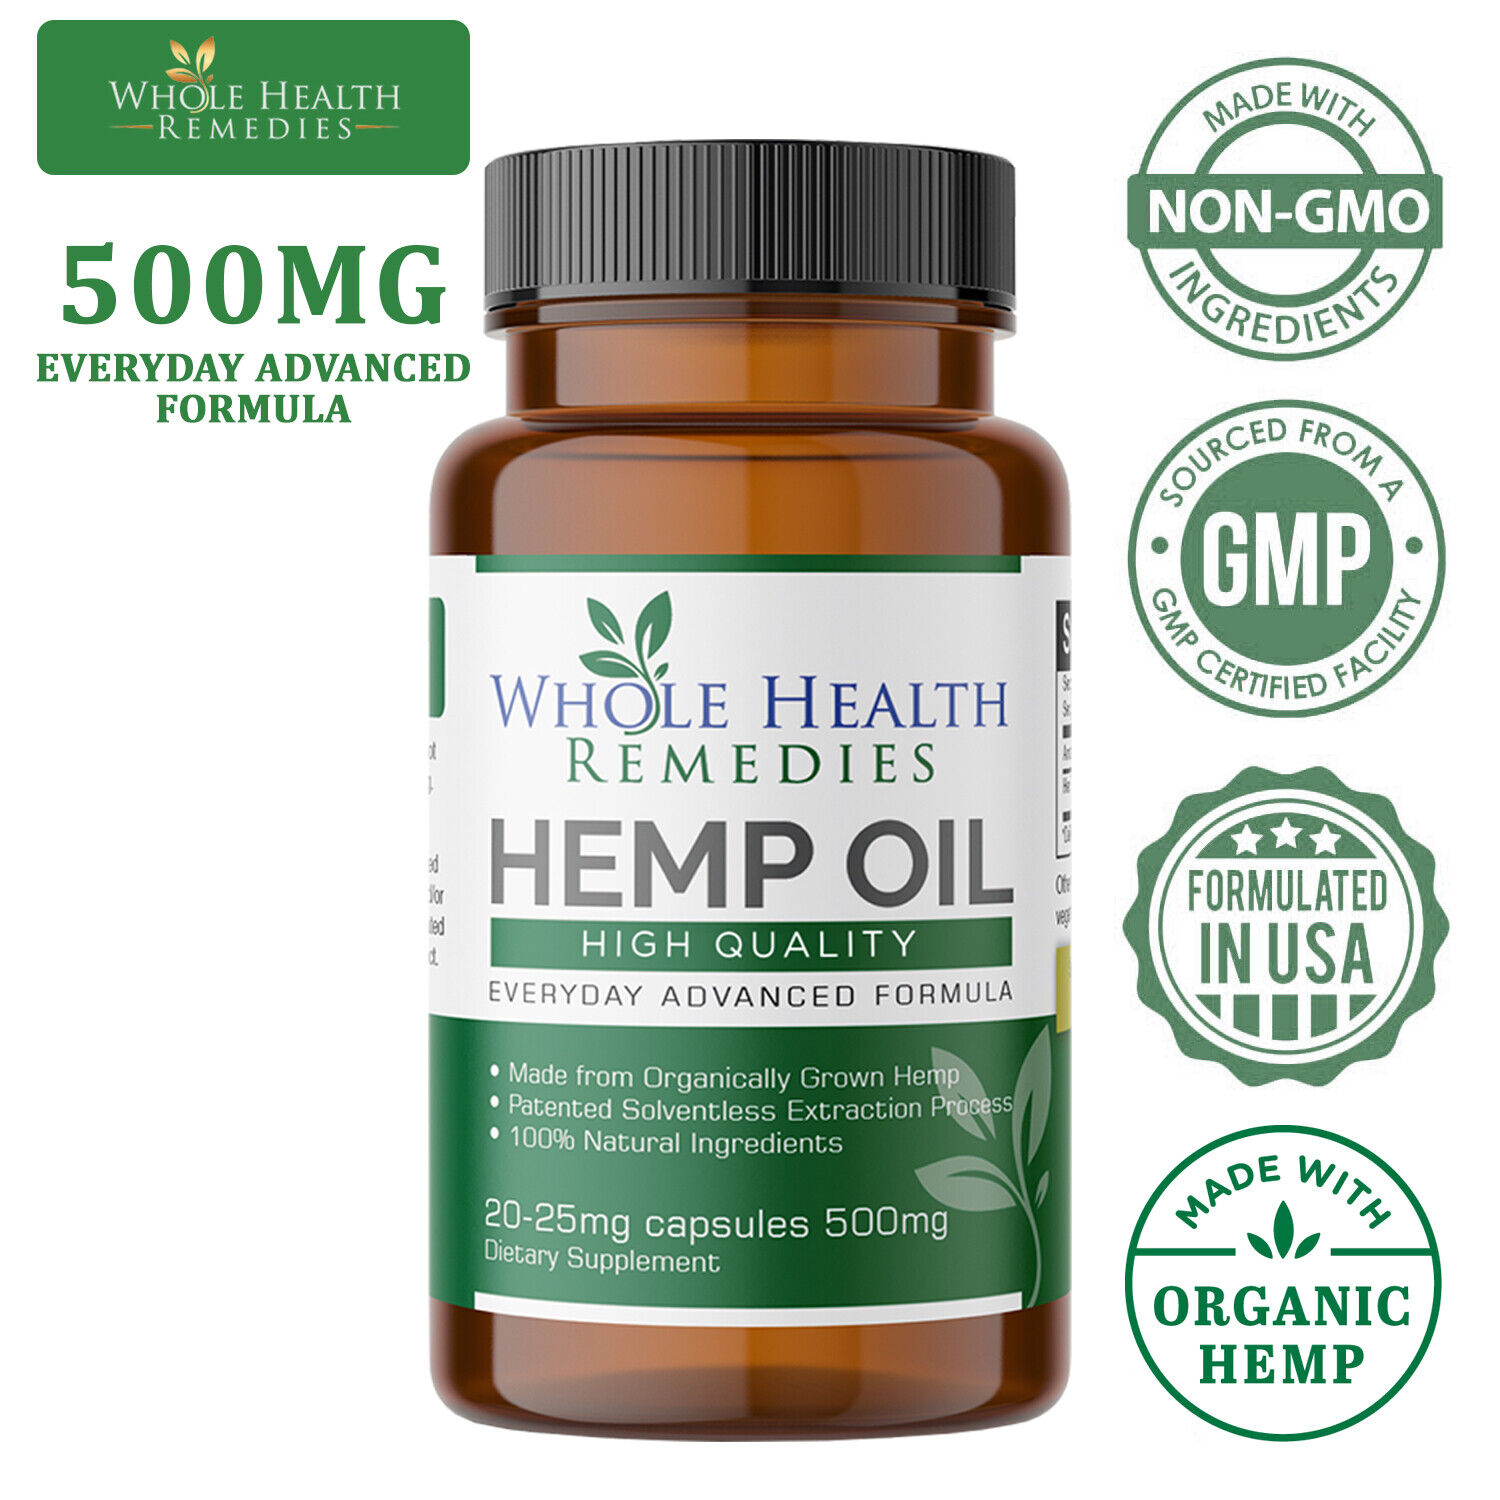 Pharmaceutical-Grade Hemp Oil Capsules for Pain & Stress Relief and Insomnia 6